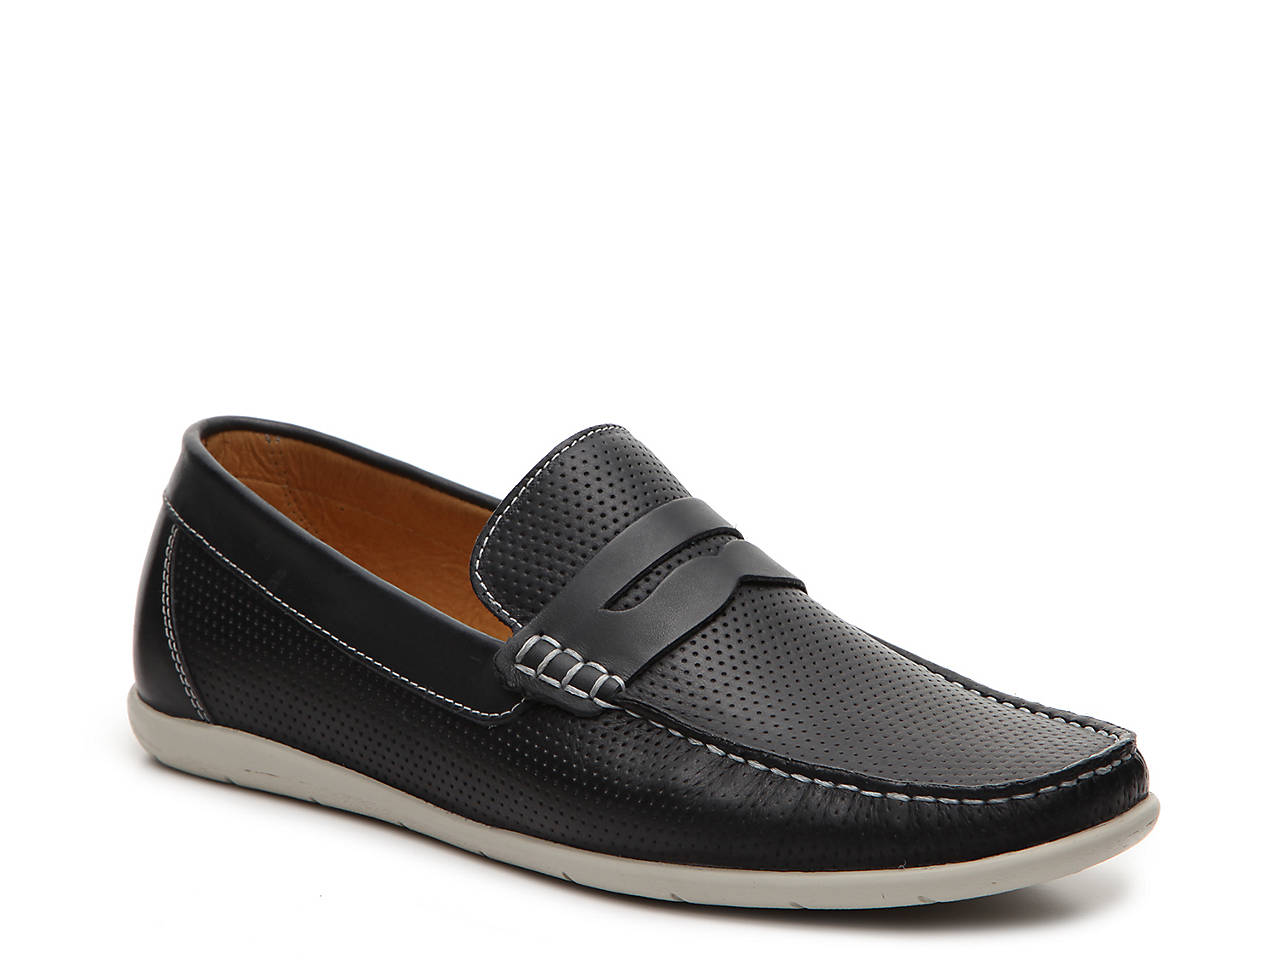 fdbf44305d4 Mercanti Fiorentini Perforated Penny Loafer Men s Shoes